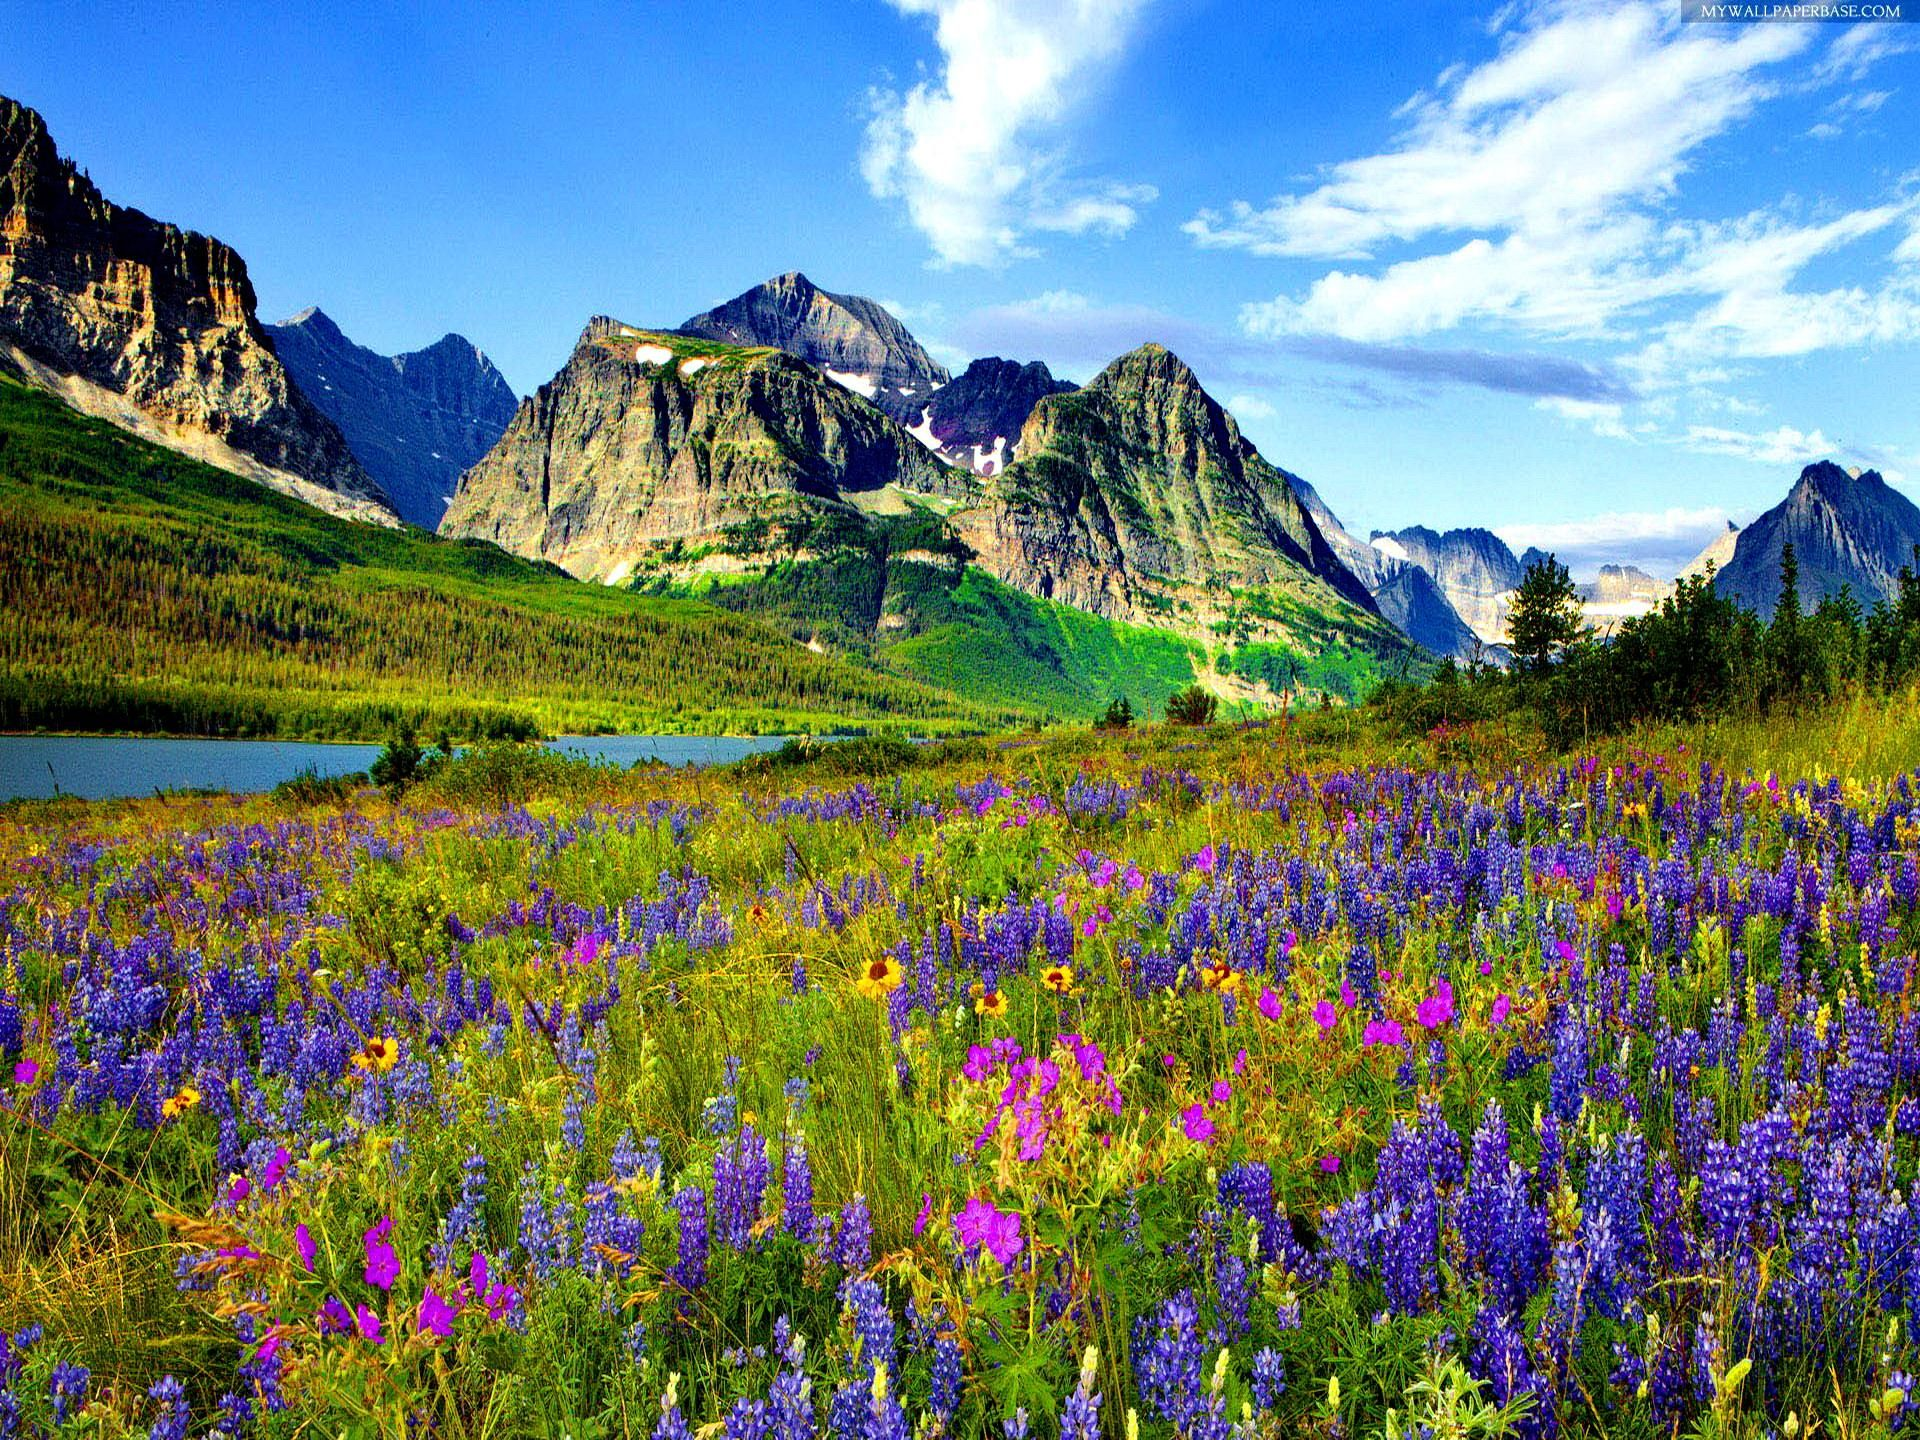 Mountain Rocky Wallpaper Colorado Flowers Mountain Flowers